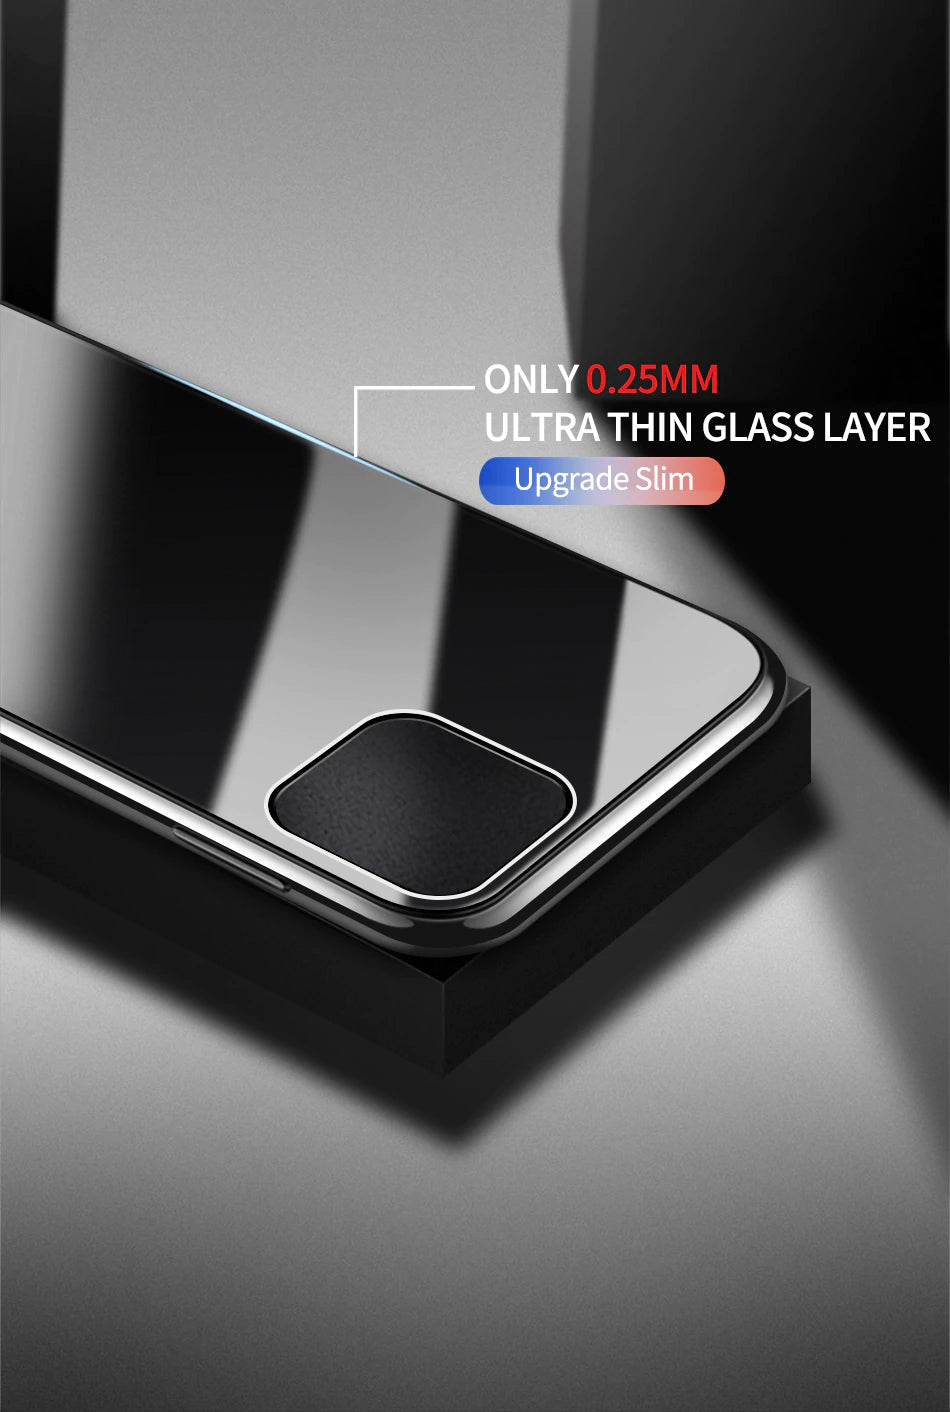 Luxury Ultra Thin Protective Glass Case For iPhone 11 Pro Max Cases Transparent Soft Edge Glass Cover For iPhone XS MAX XR X 10 7 8